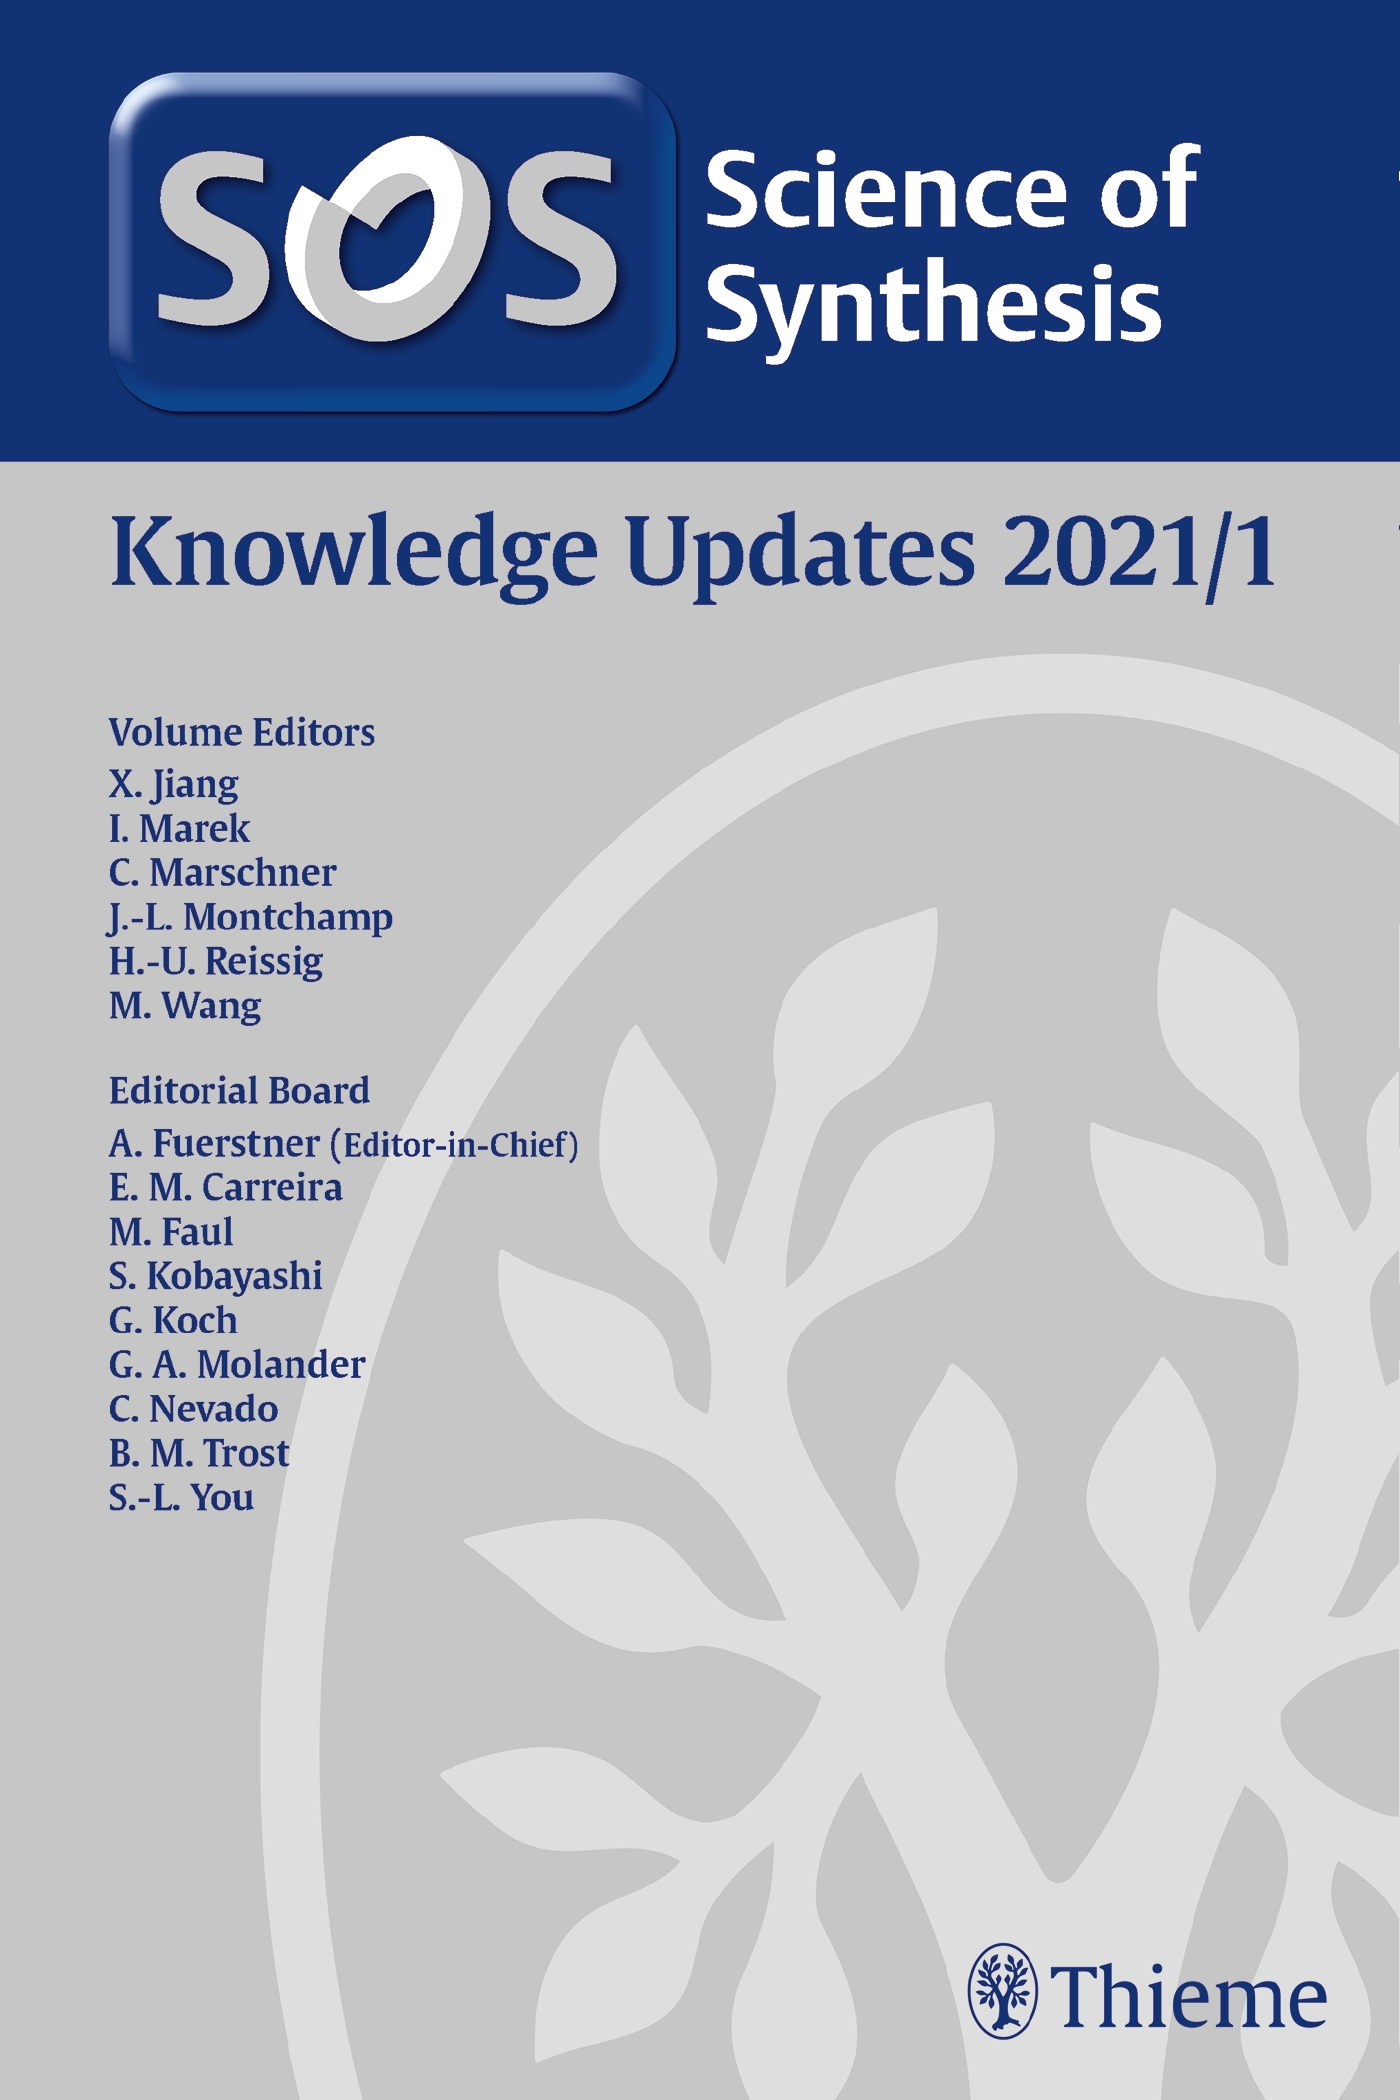 Science of Synthesis: Knowledge Updates 2021/1